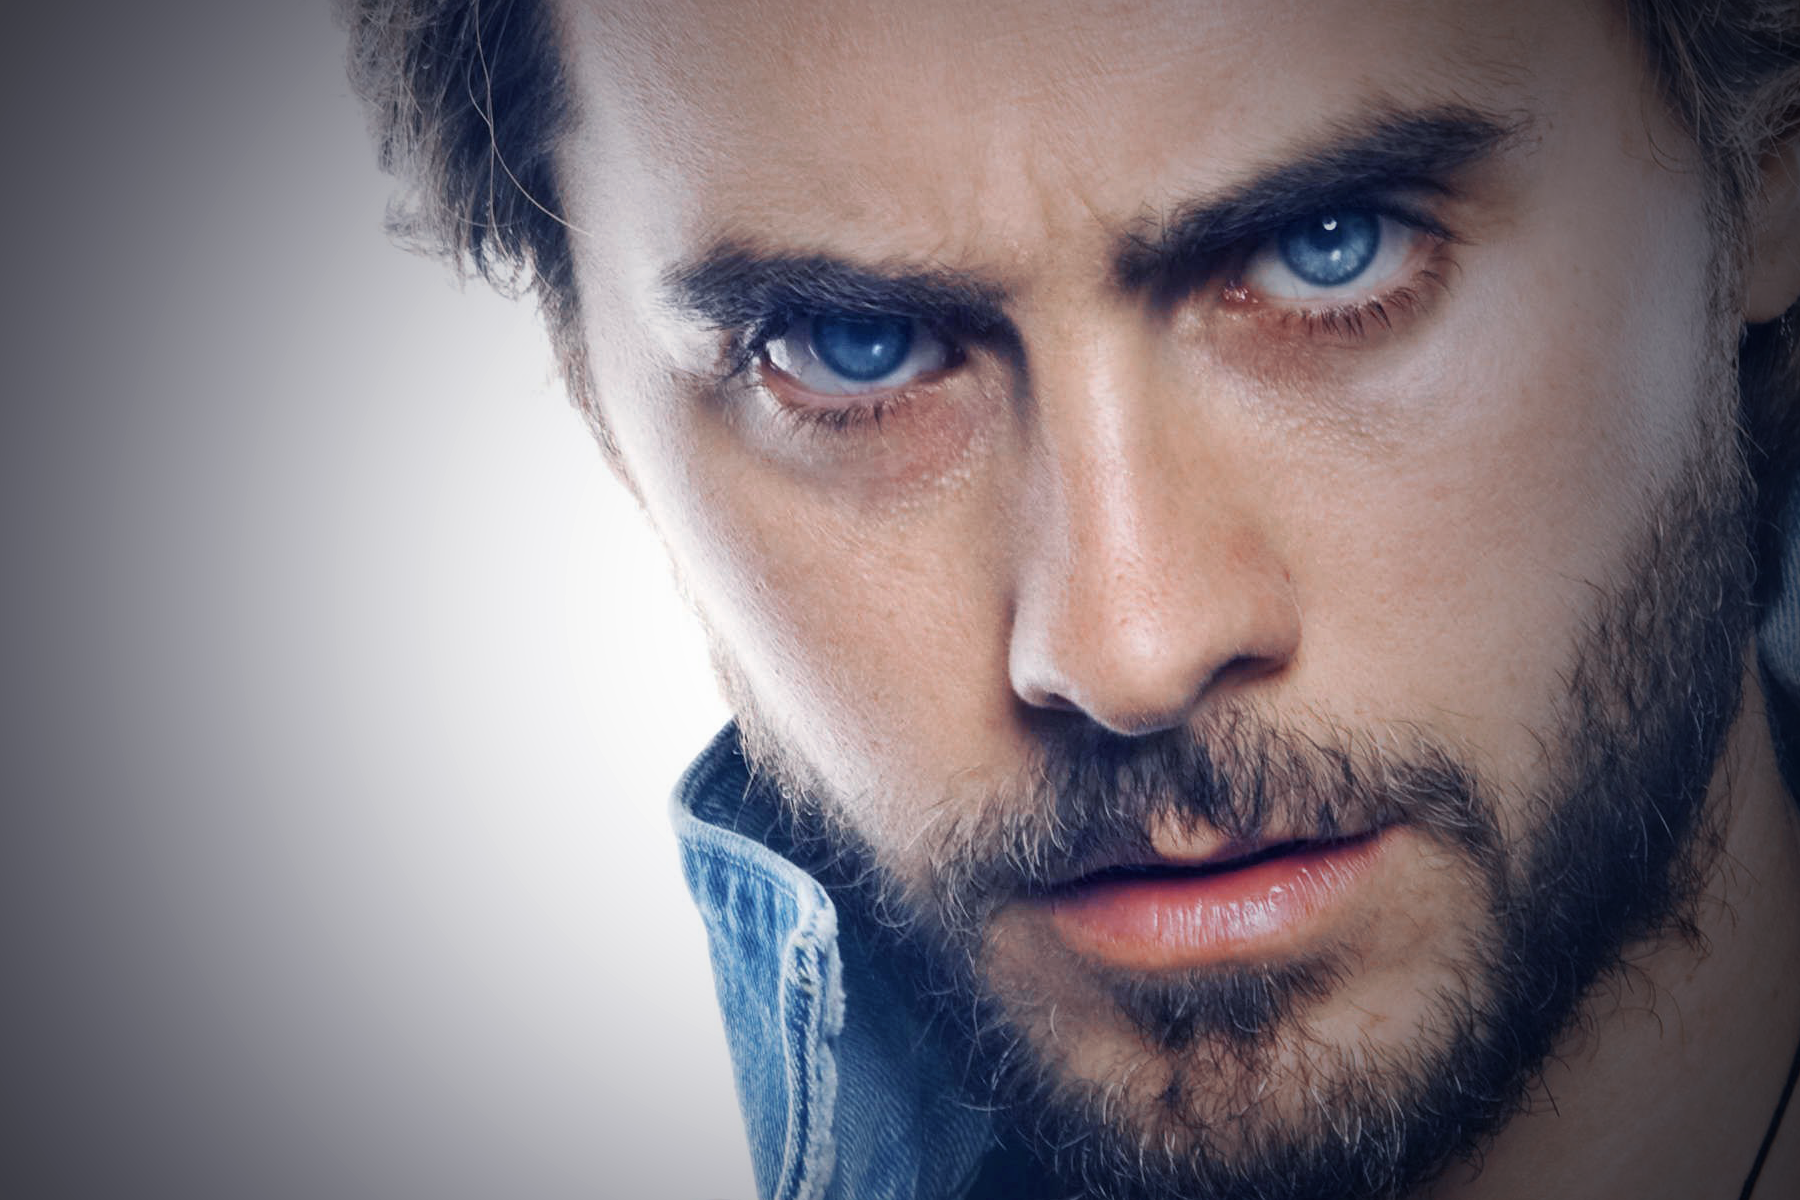 Jared Leto Wallpapers High Resolution and Quality Download